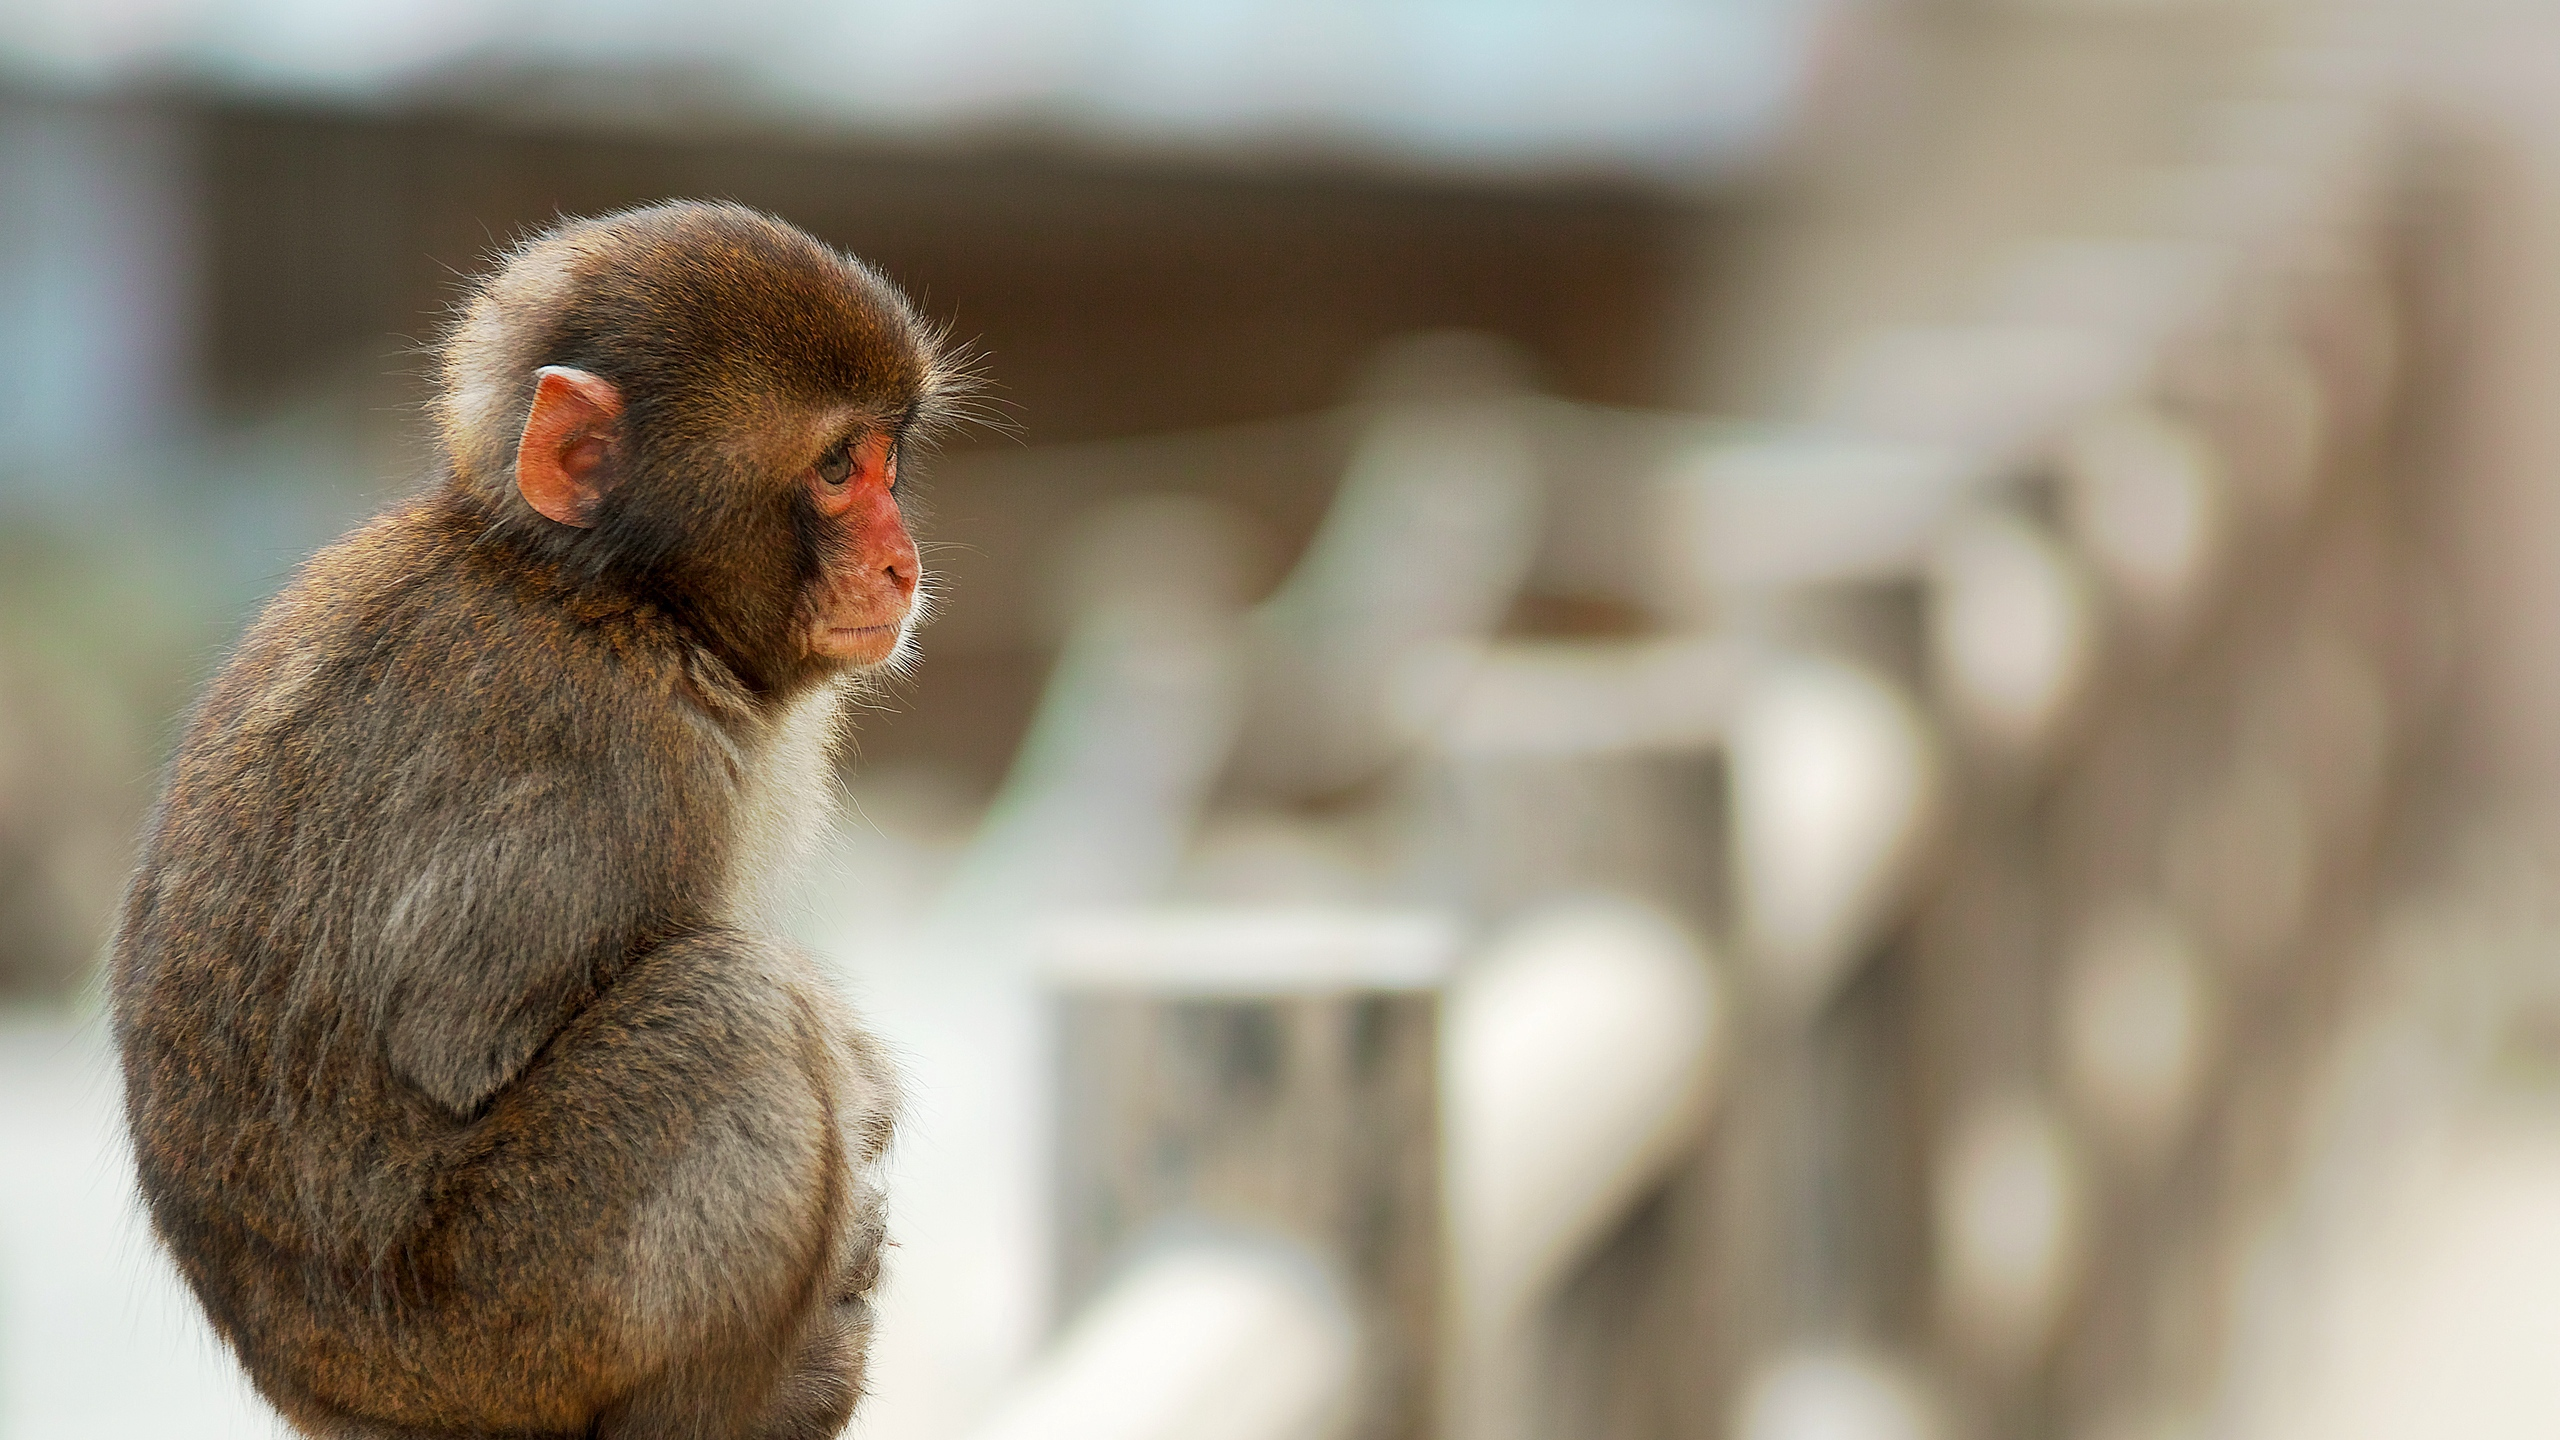 Download wallpaper 2560x1440 monkey, sitting, small widescreen 16:9 ...